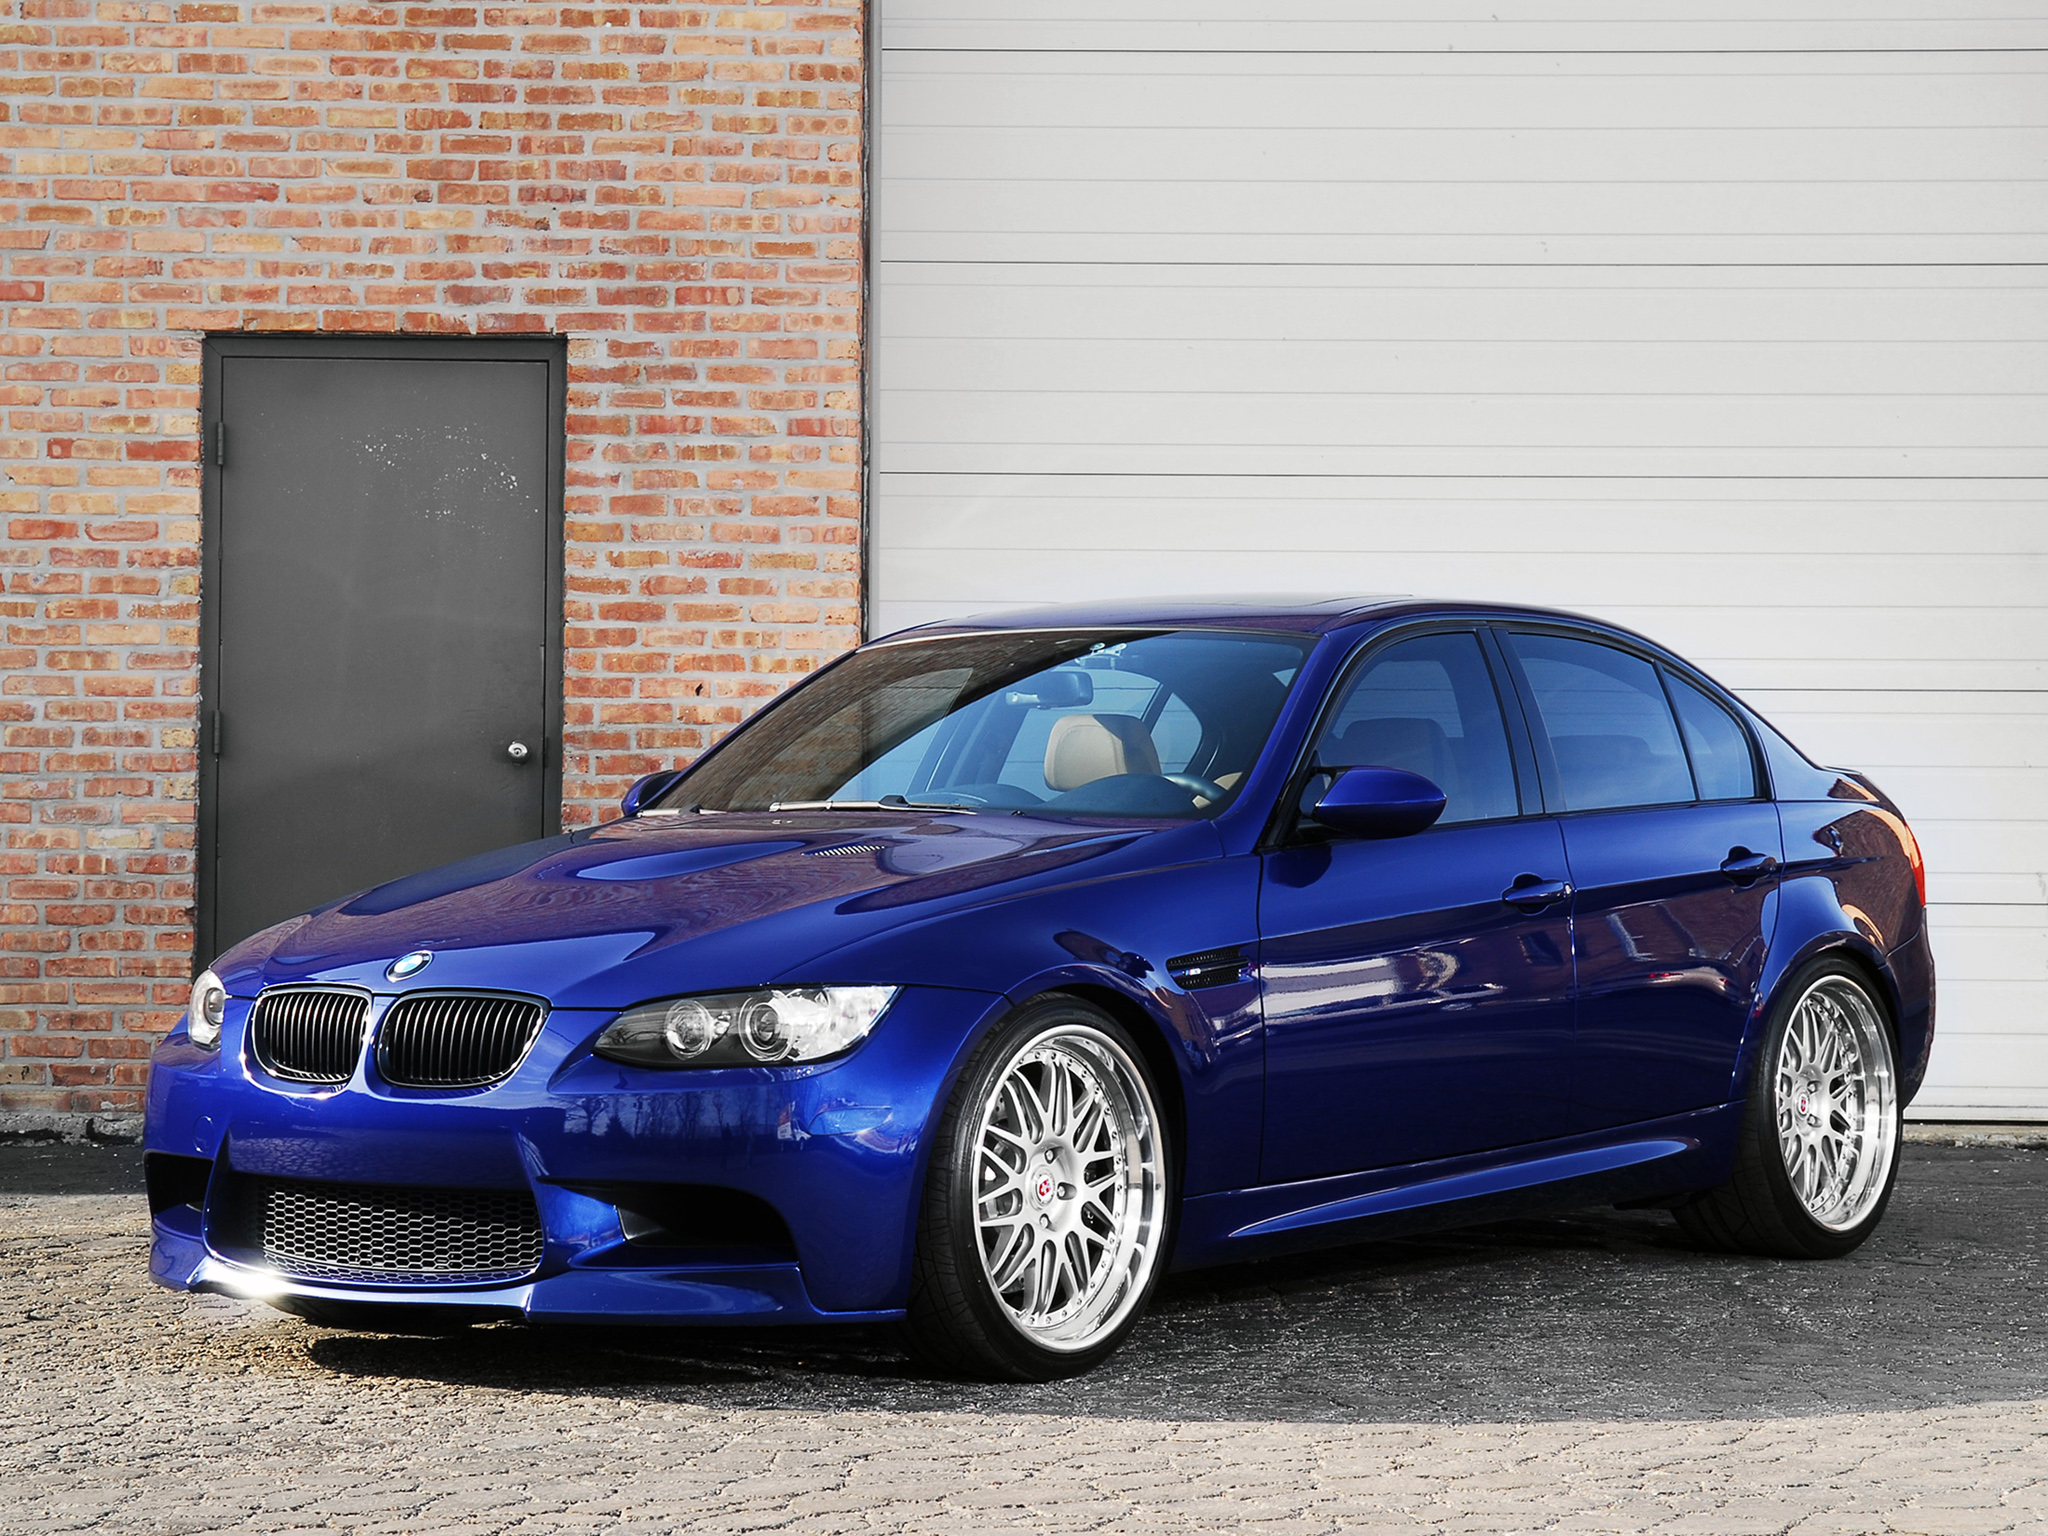 bmw m3 e90 sedan photos photogallery with 55 pics. Black Bedroom Furniture Sets. Home Design Ideas